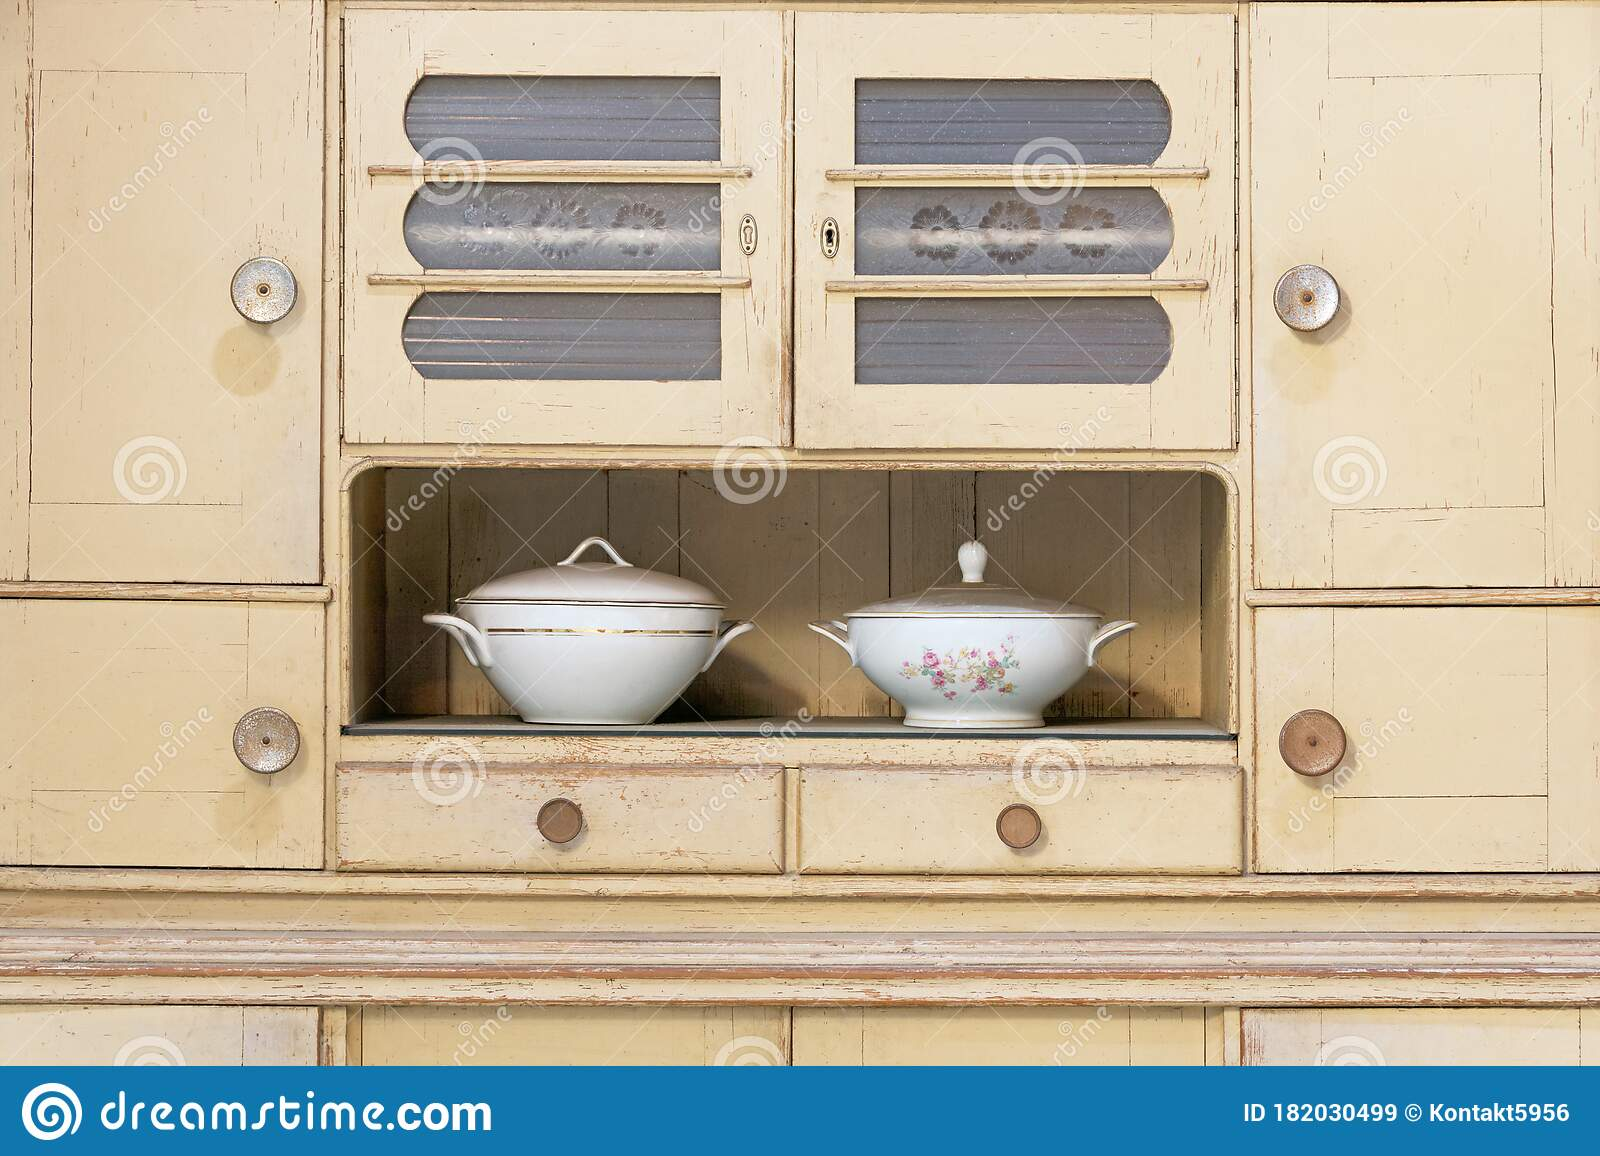 An Old Kitchen Buffet In Vintage Style Stock Image Image Of Rustic Retro 182030499